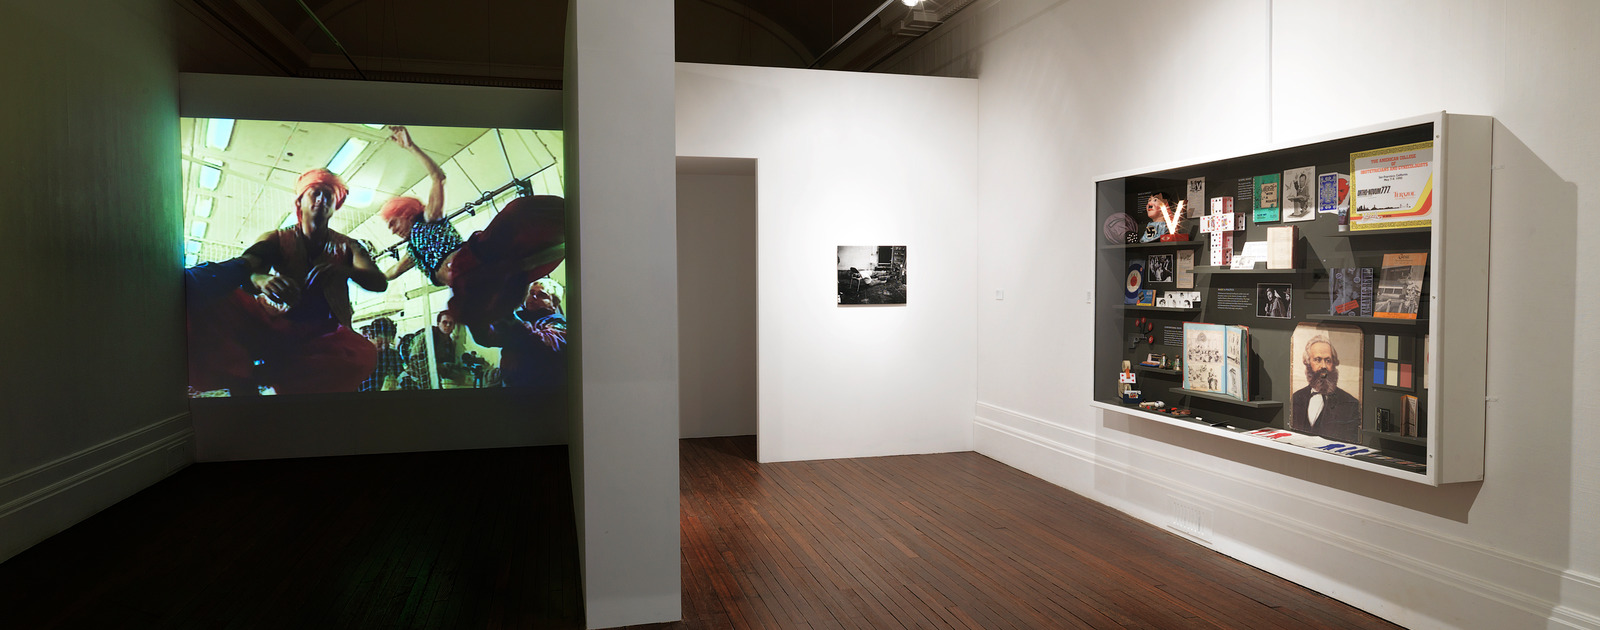 IInstallation View at the MAGIC ART SHOW 2009